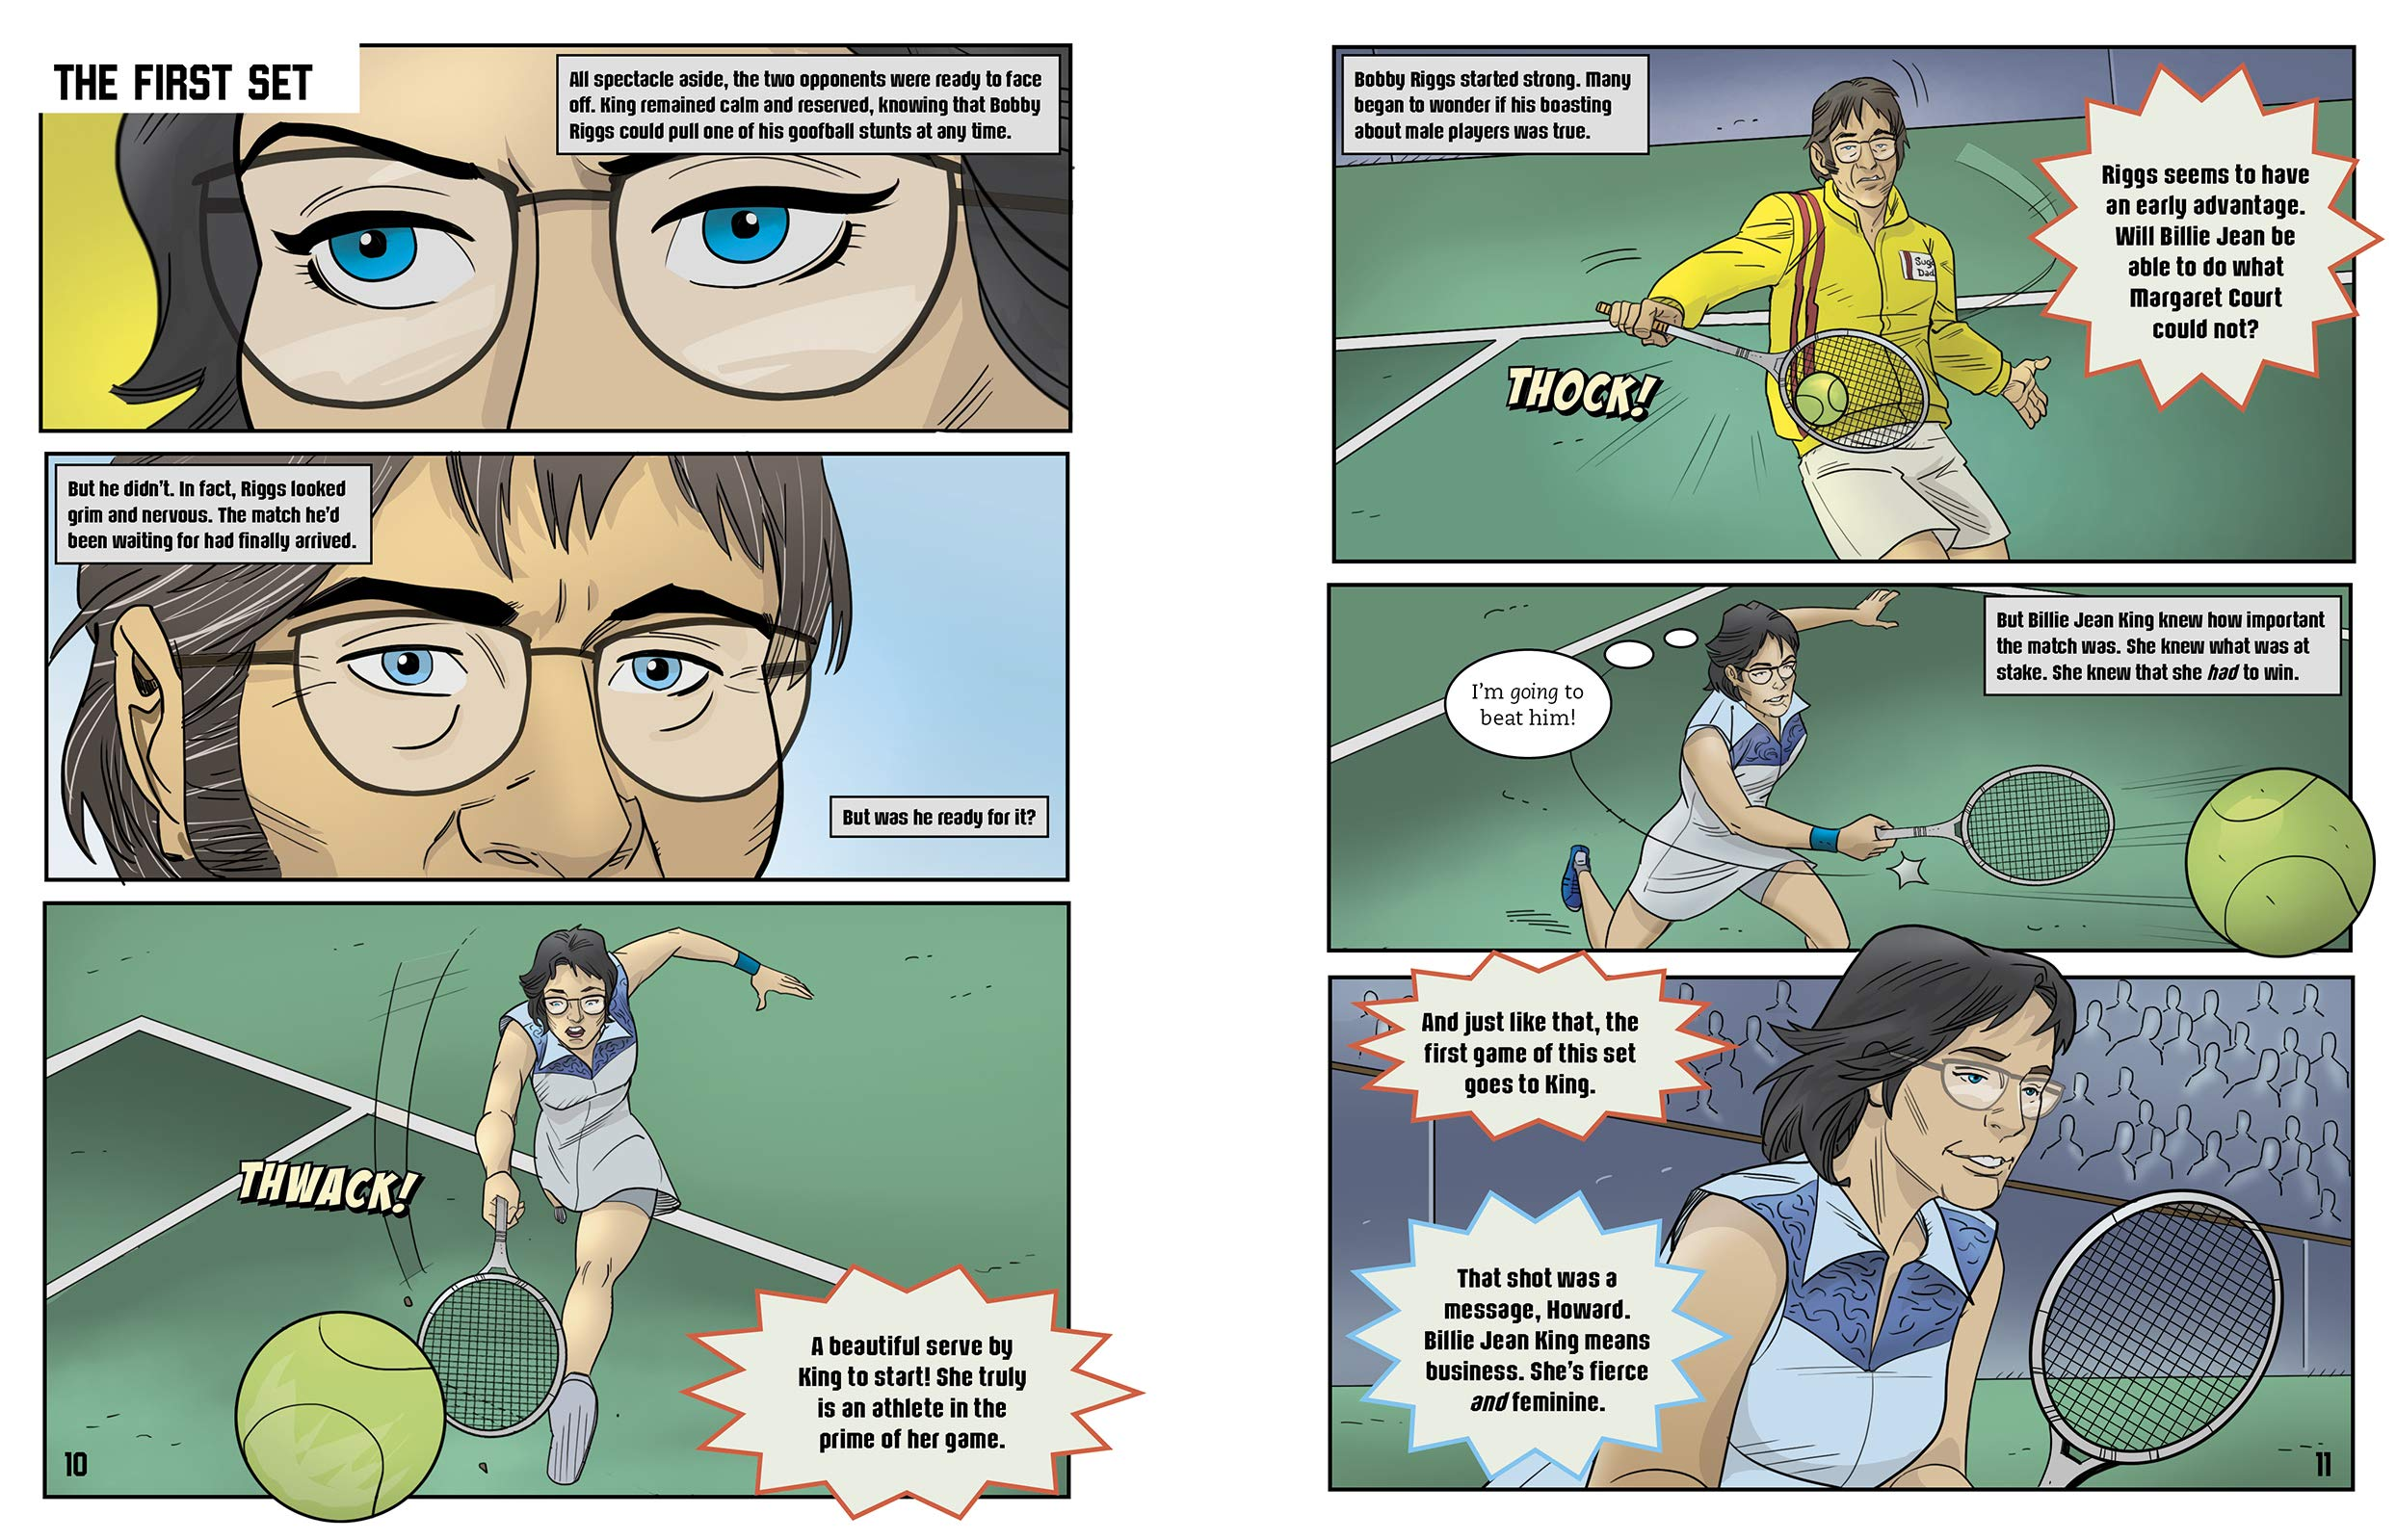 A Win for Women: Billie Jean King Takes Down Bobby Riggs ...